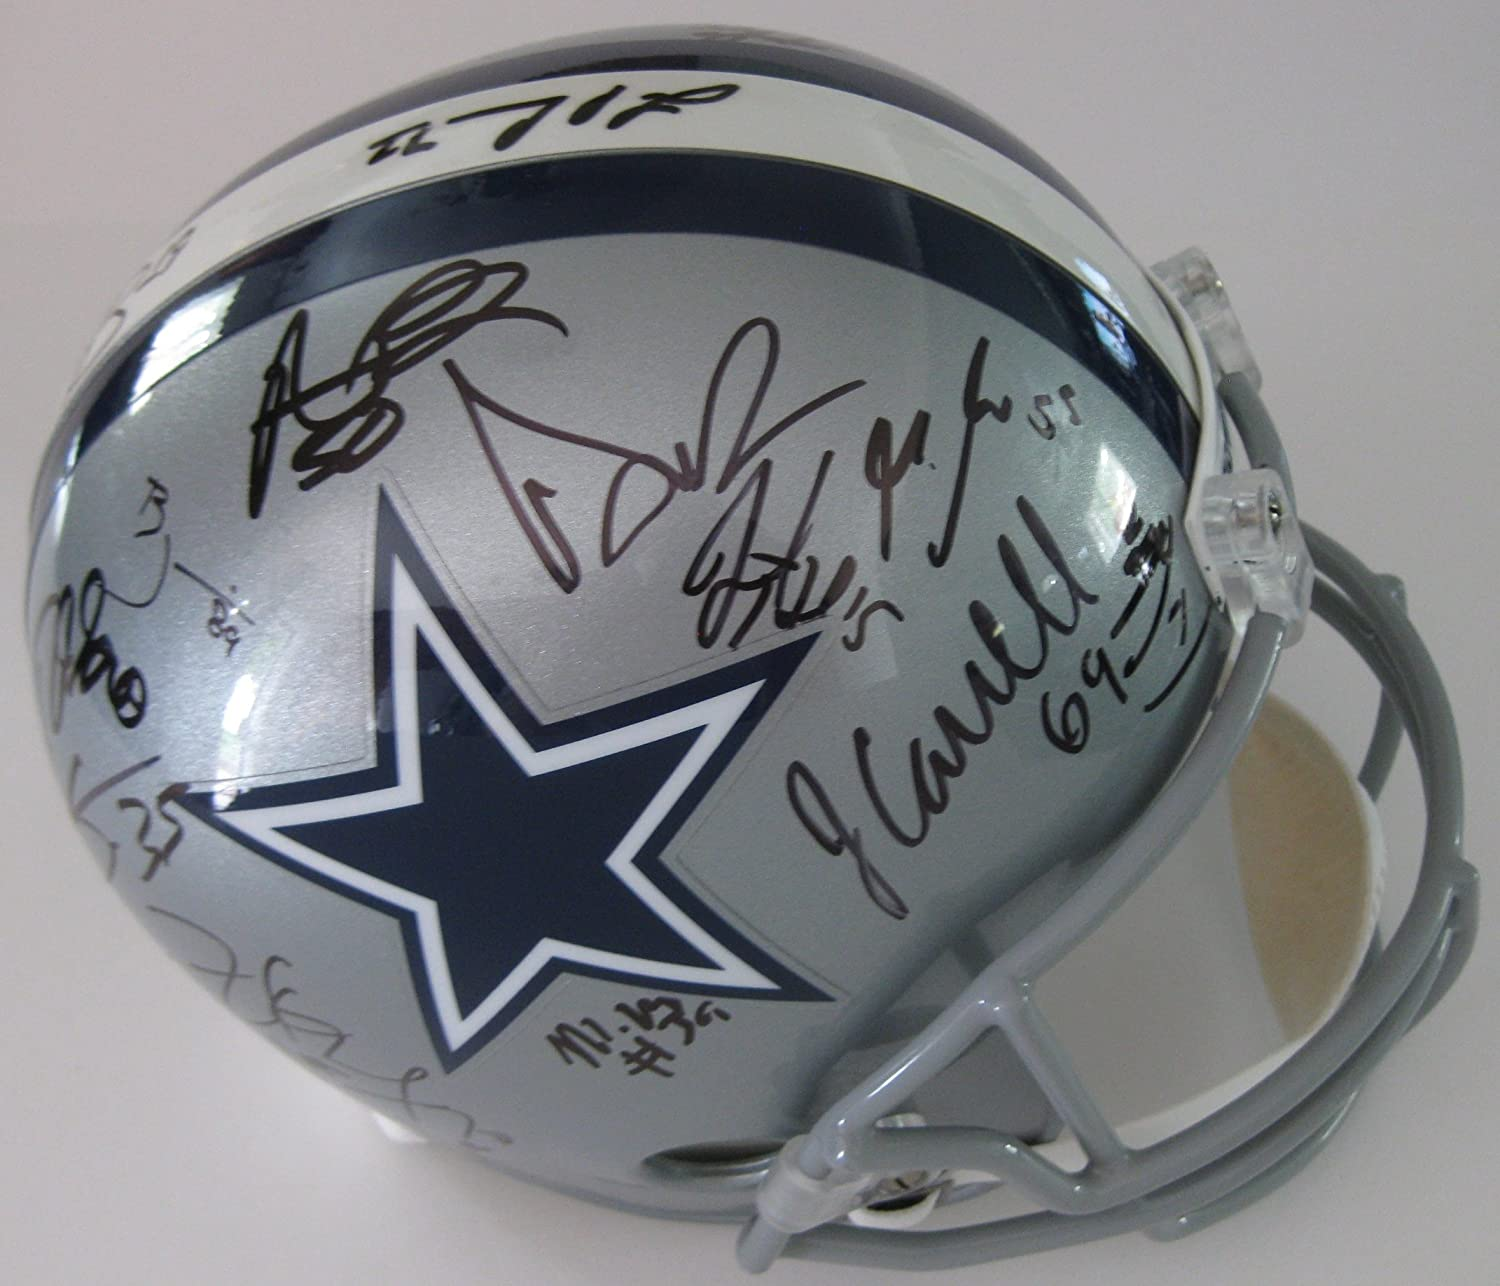 3e54ca883dd Amazon.com: 2017-2018 Dallas Cowboys, Team, Signed, Autographed, Full Size  Football Helmet, a COA with the Proof Photos of the Cowboys Players Signing  the ...